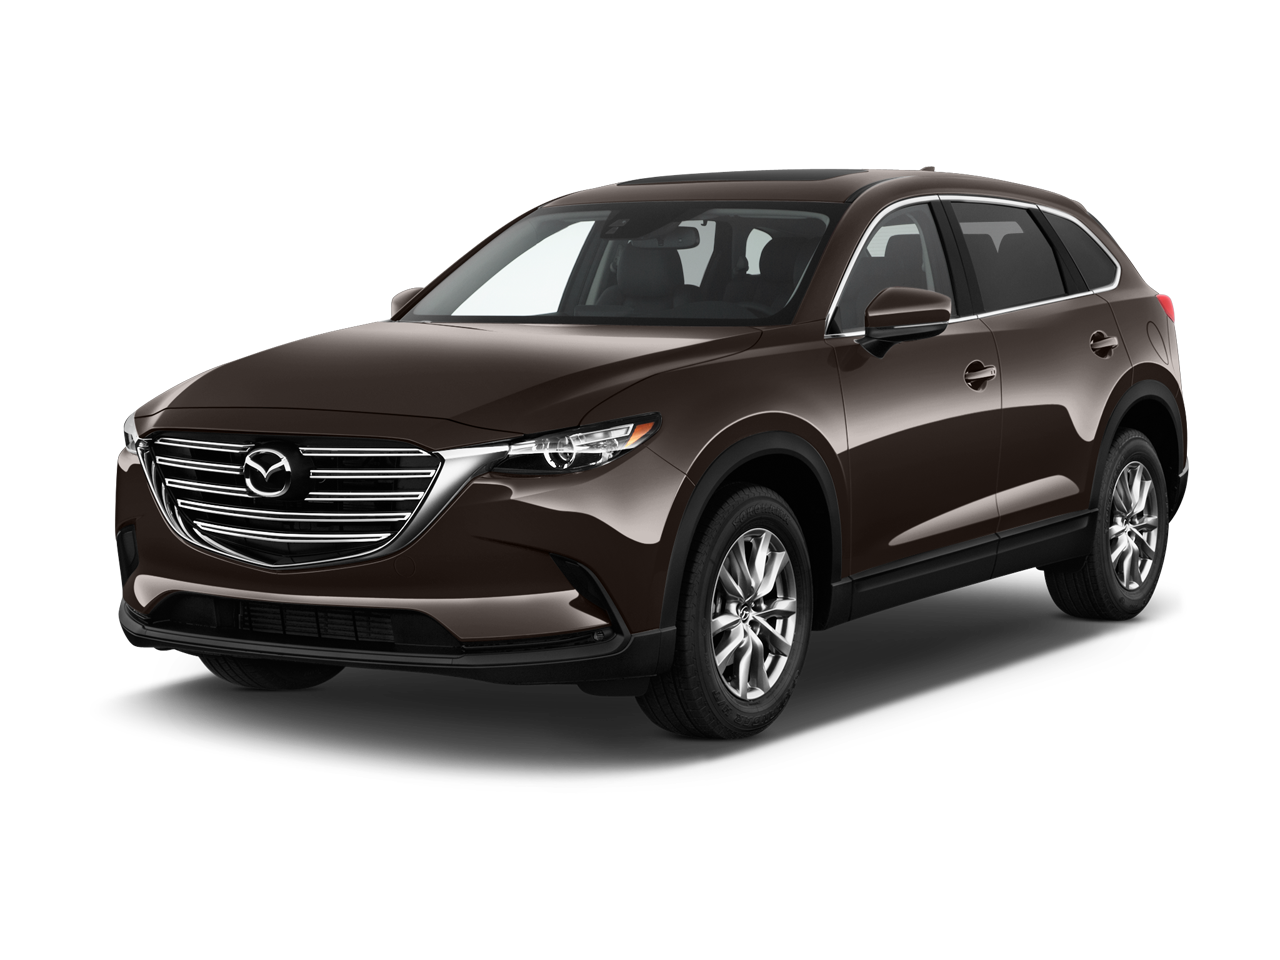 Mazda Dealer New Braunfels >> New 2018 Mazda CX-9 Sport FWD - New Braunfels TX - World Car Mazda New Braunfels